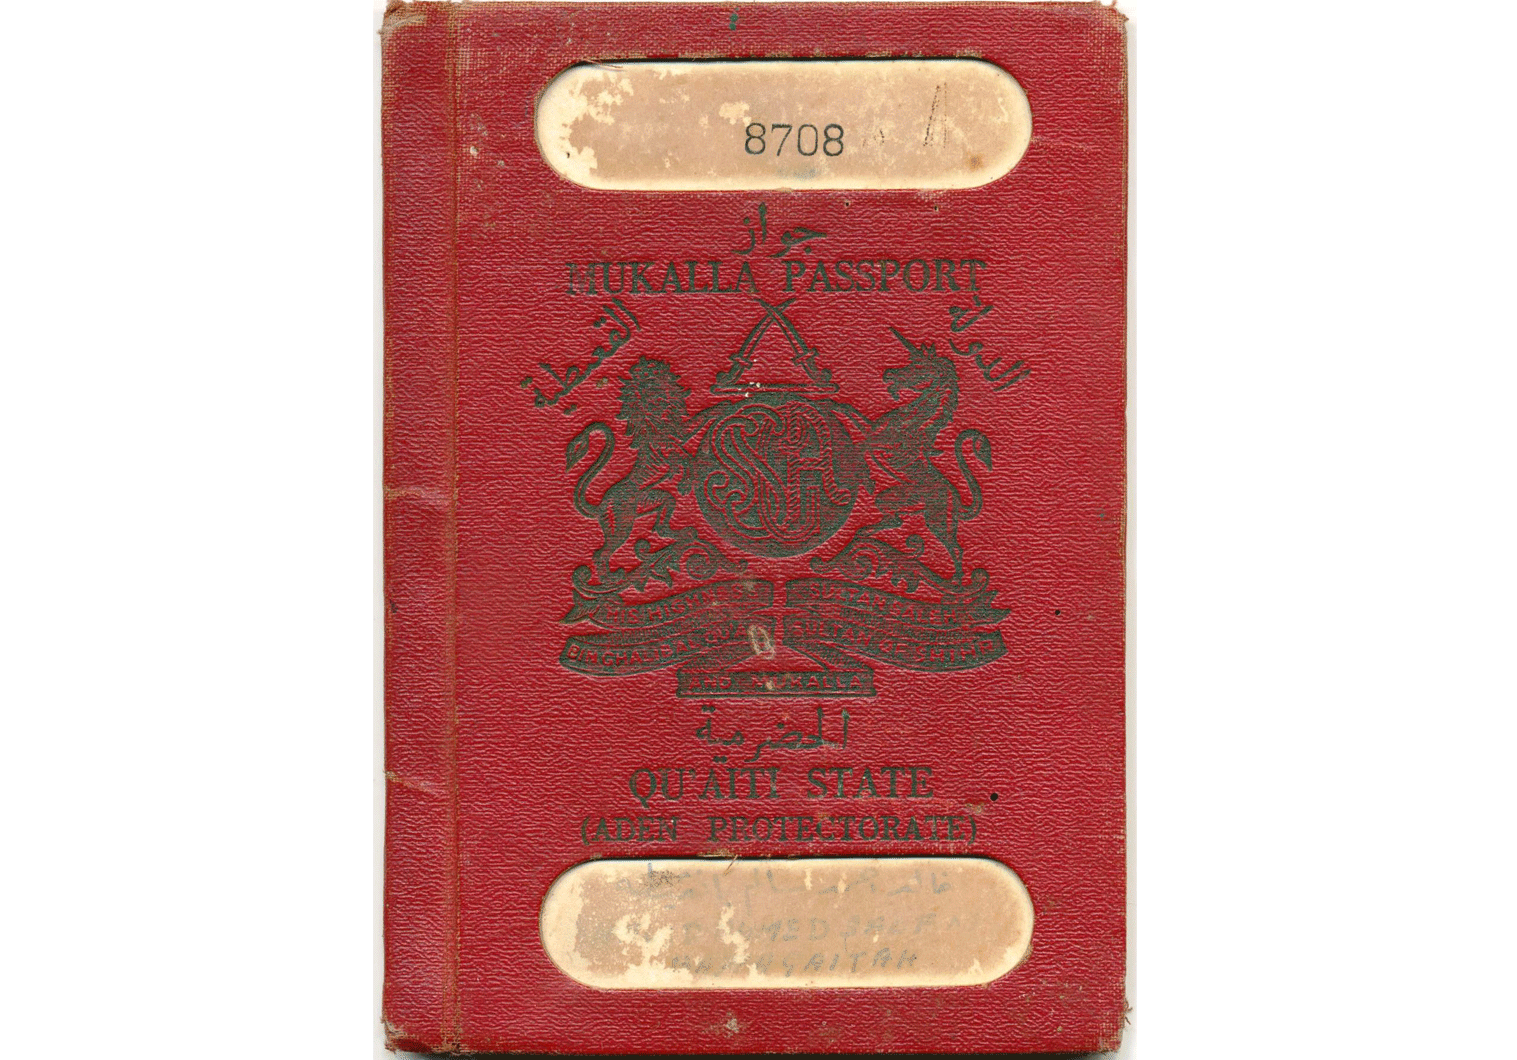 Aden Protectorate passport